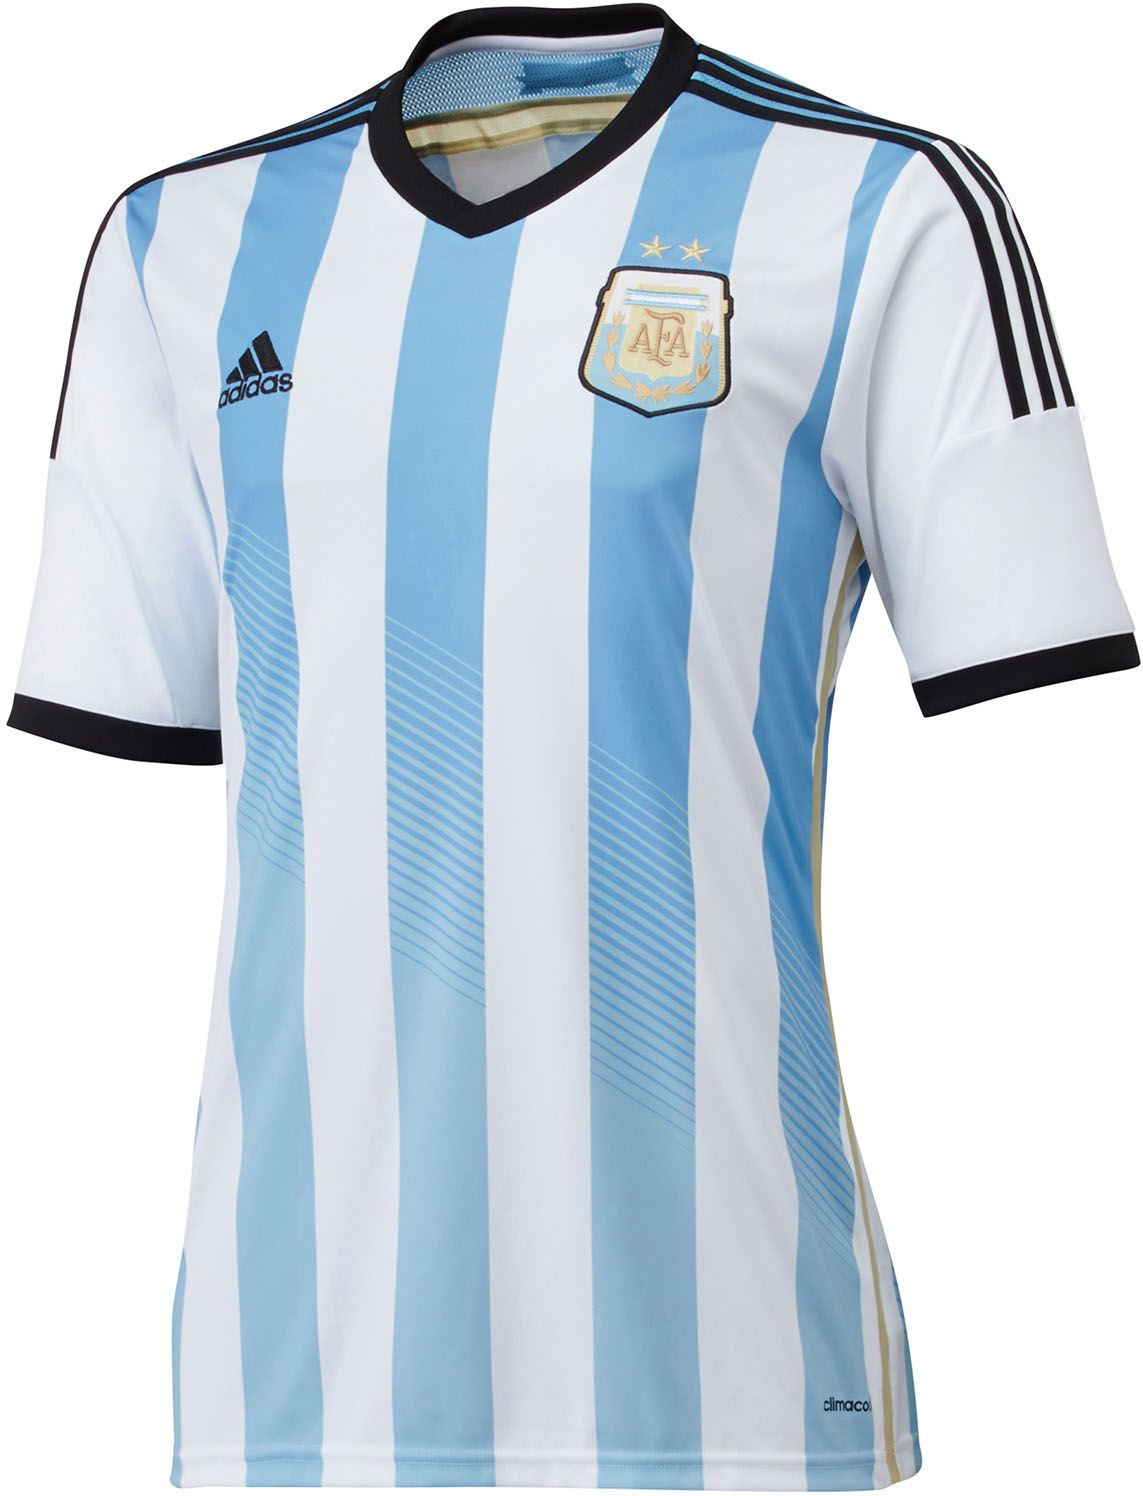 a6671b7e20a Argentina Home Kit for World Cup 2014  worldcup  brazil2014  argentina   soccer  football  ARG